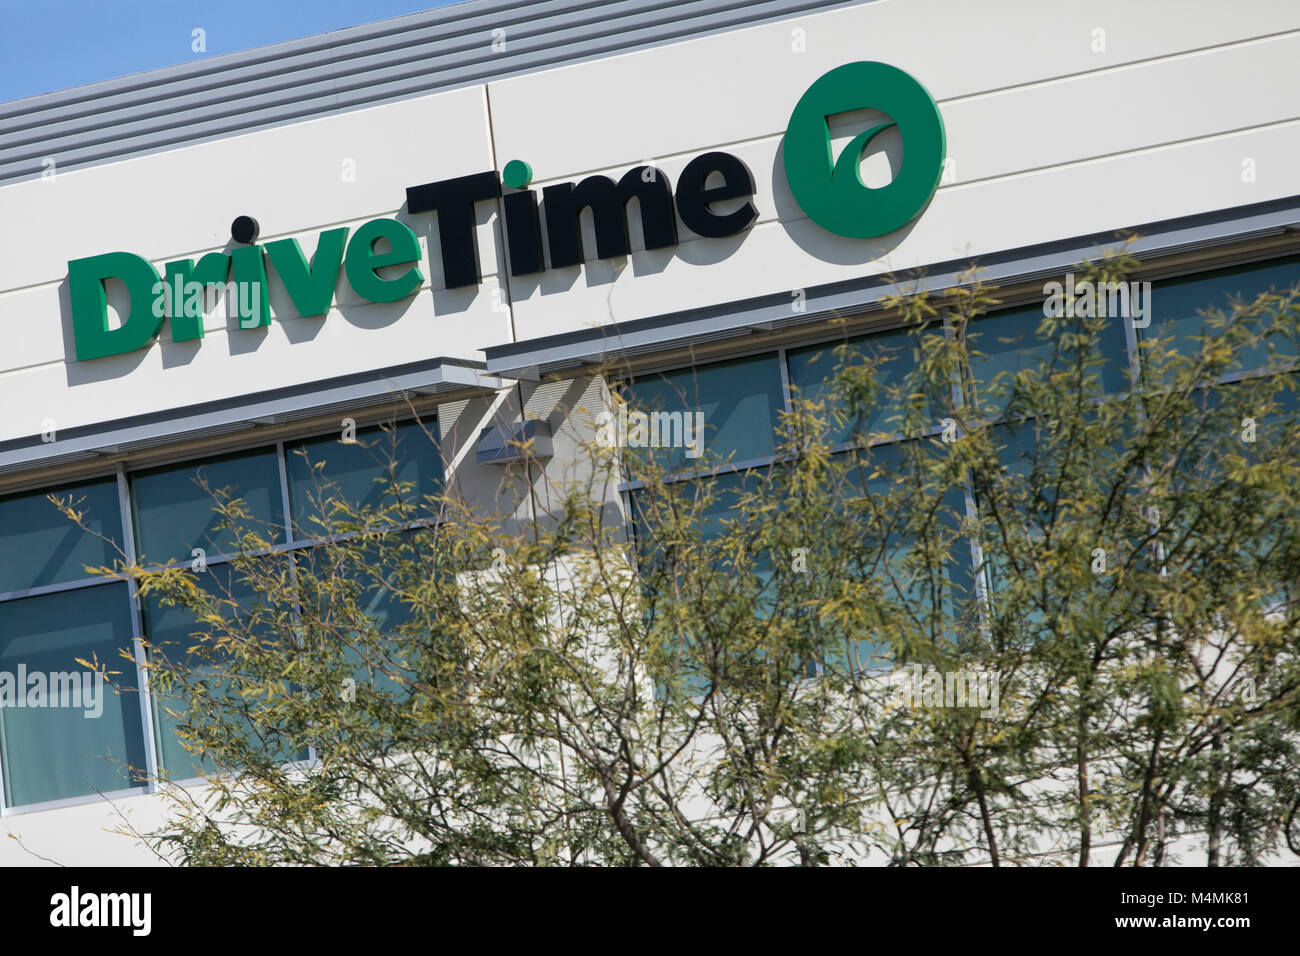 A Logo Sign Outside Of The Headquarters Of The Drivetime Automotive